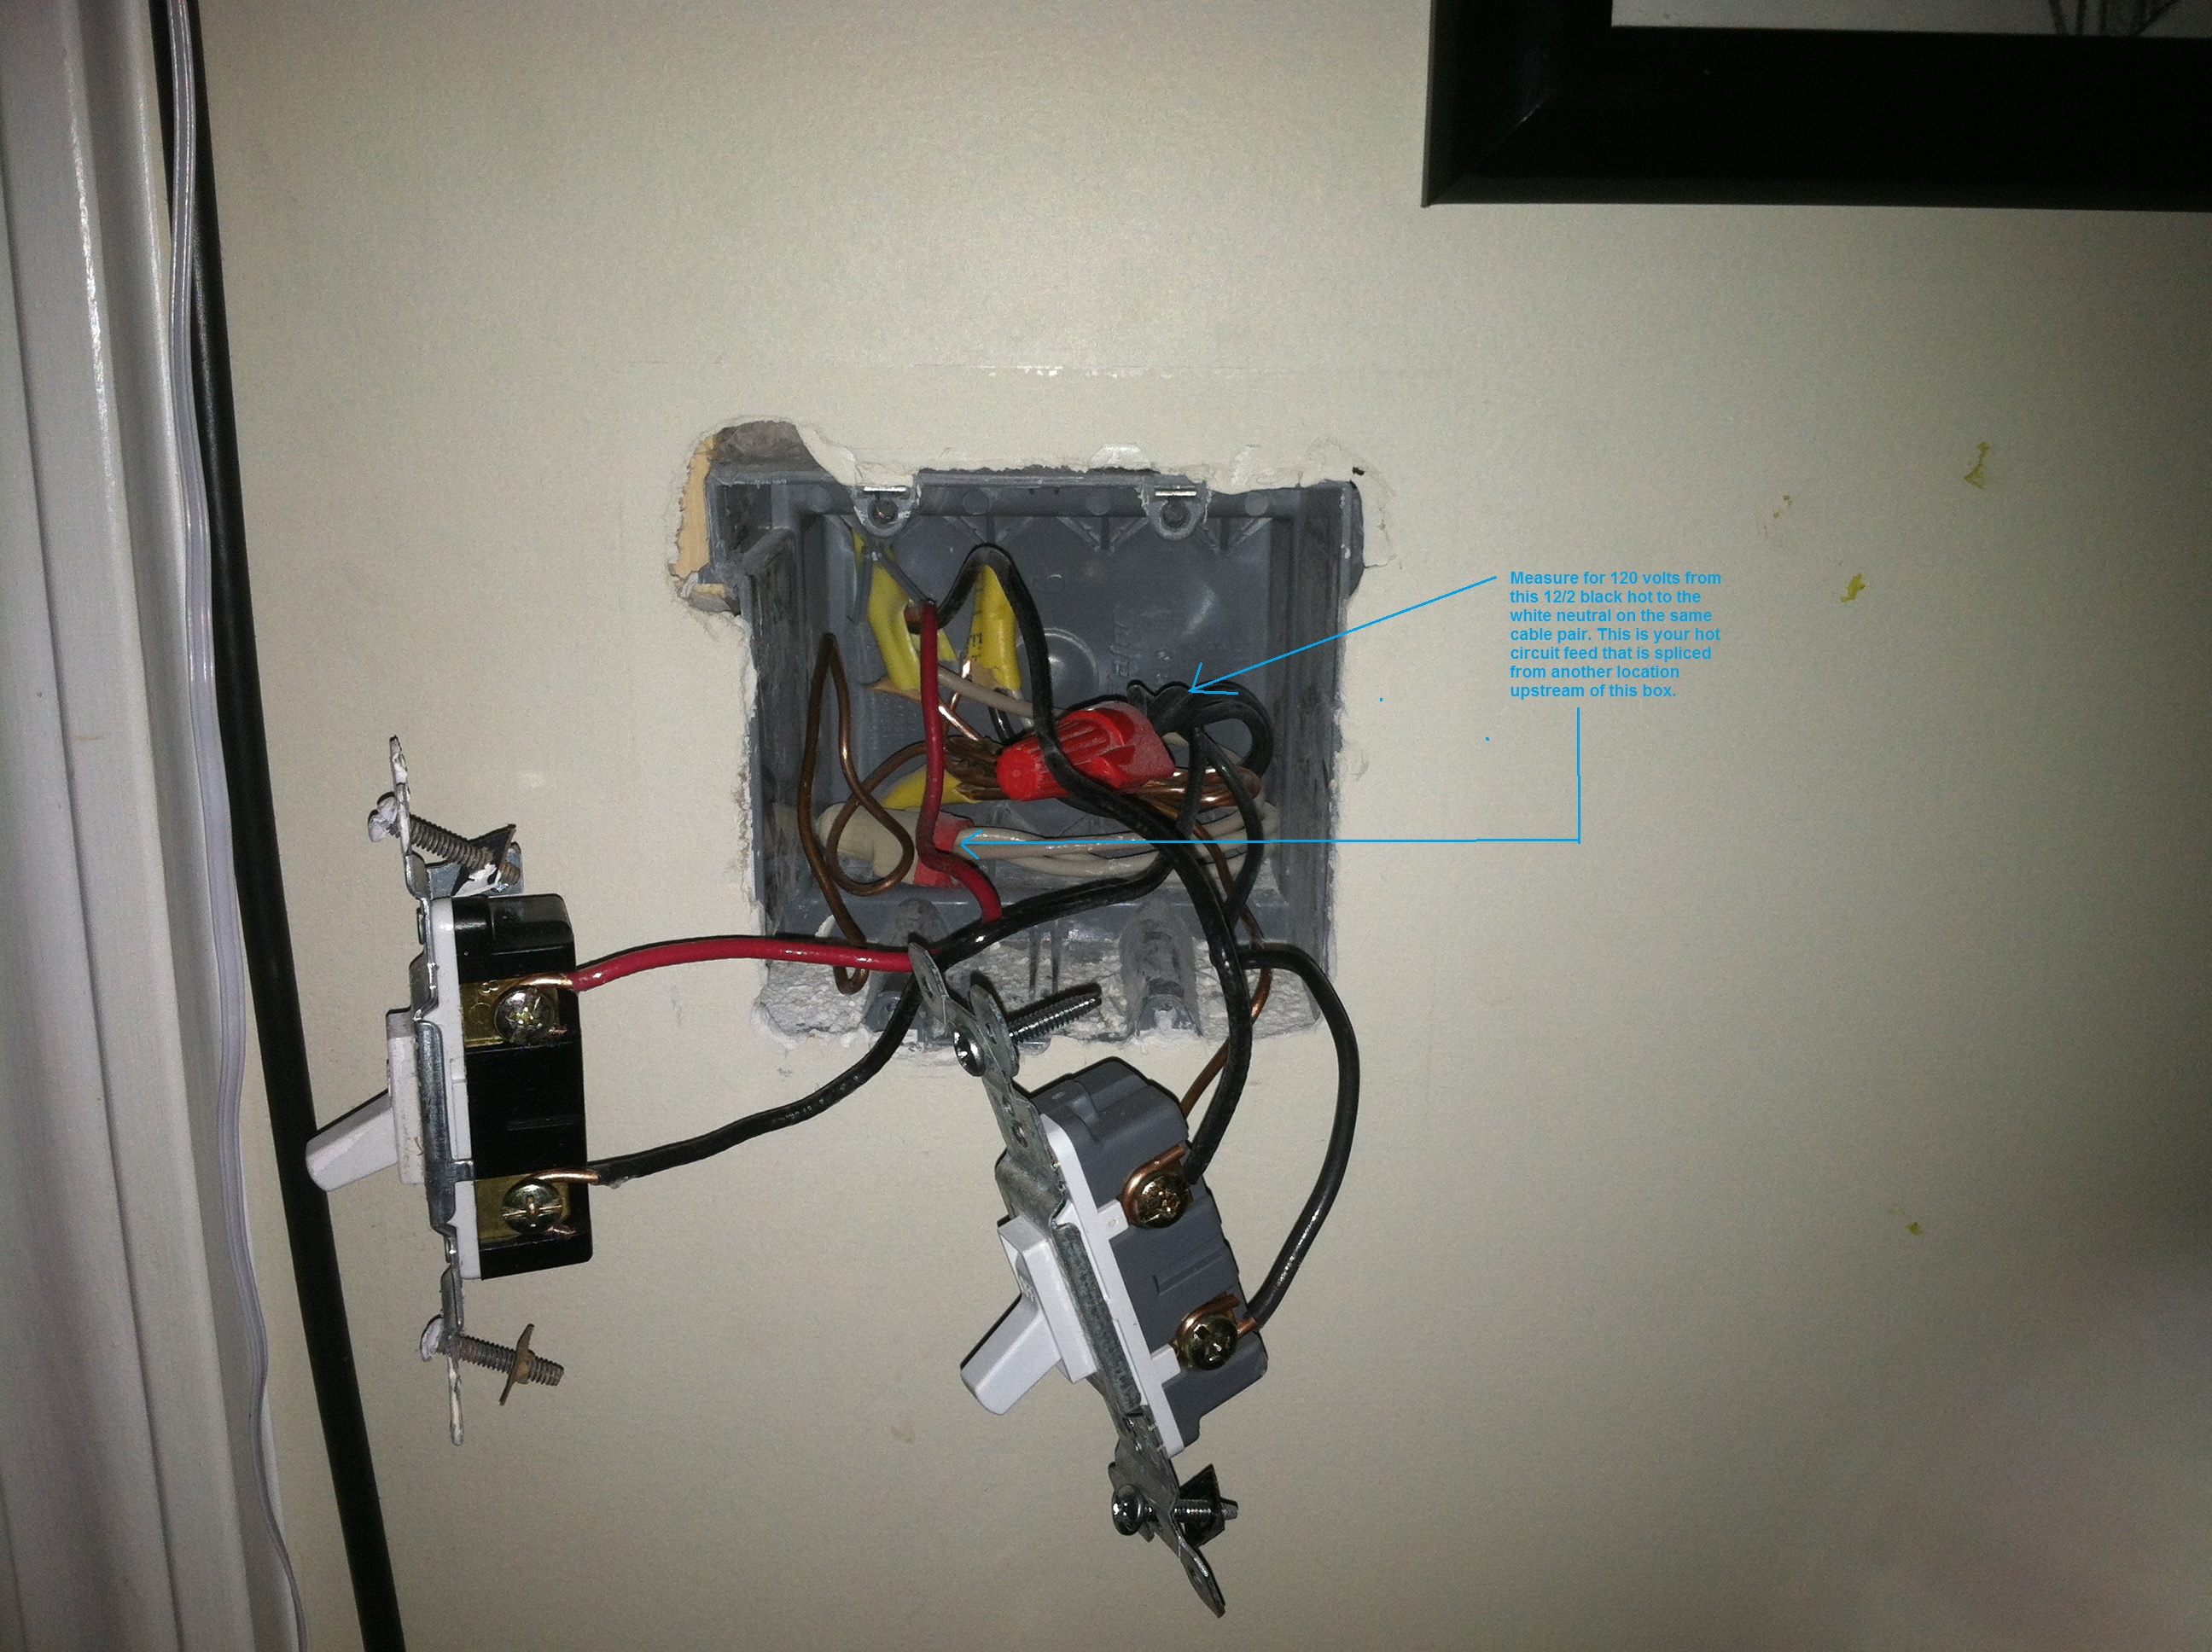 wiring diagram outlet box wiring image wiring 4 gang outlet wiring 4 wiring diagrams car on wiring diagram 4 outlet box